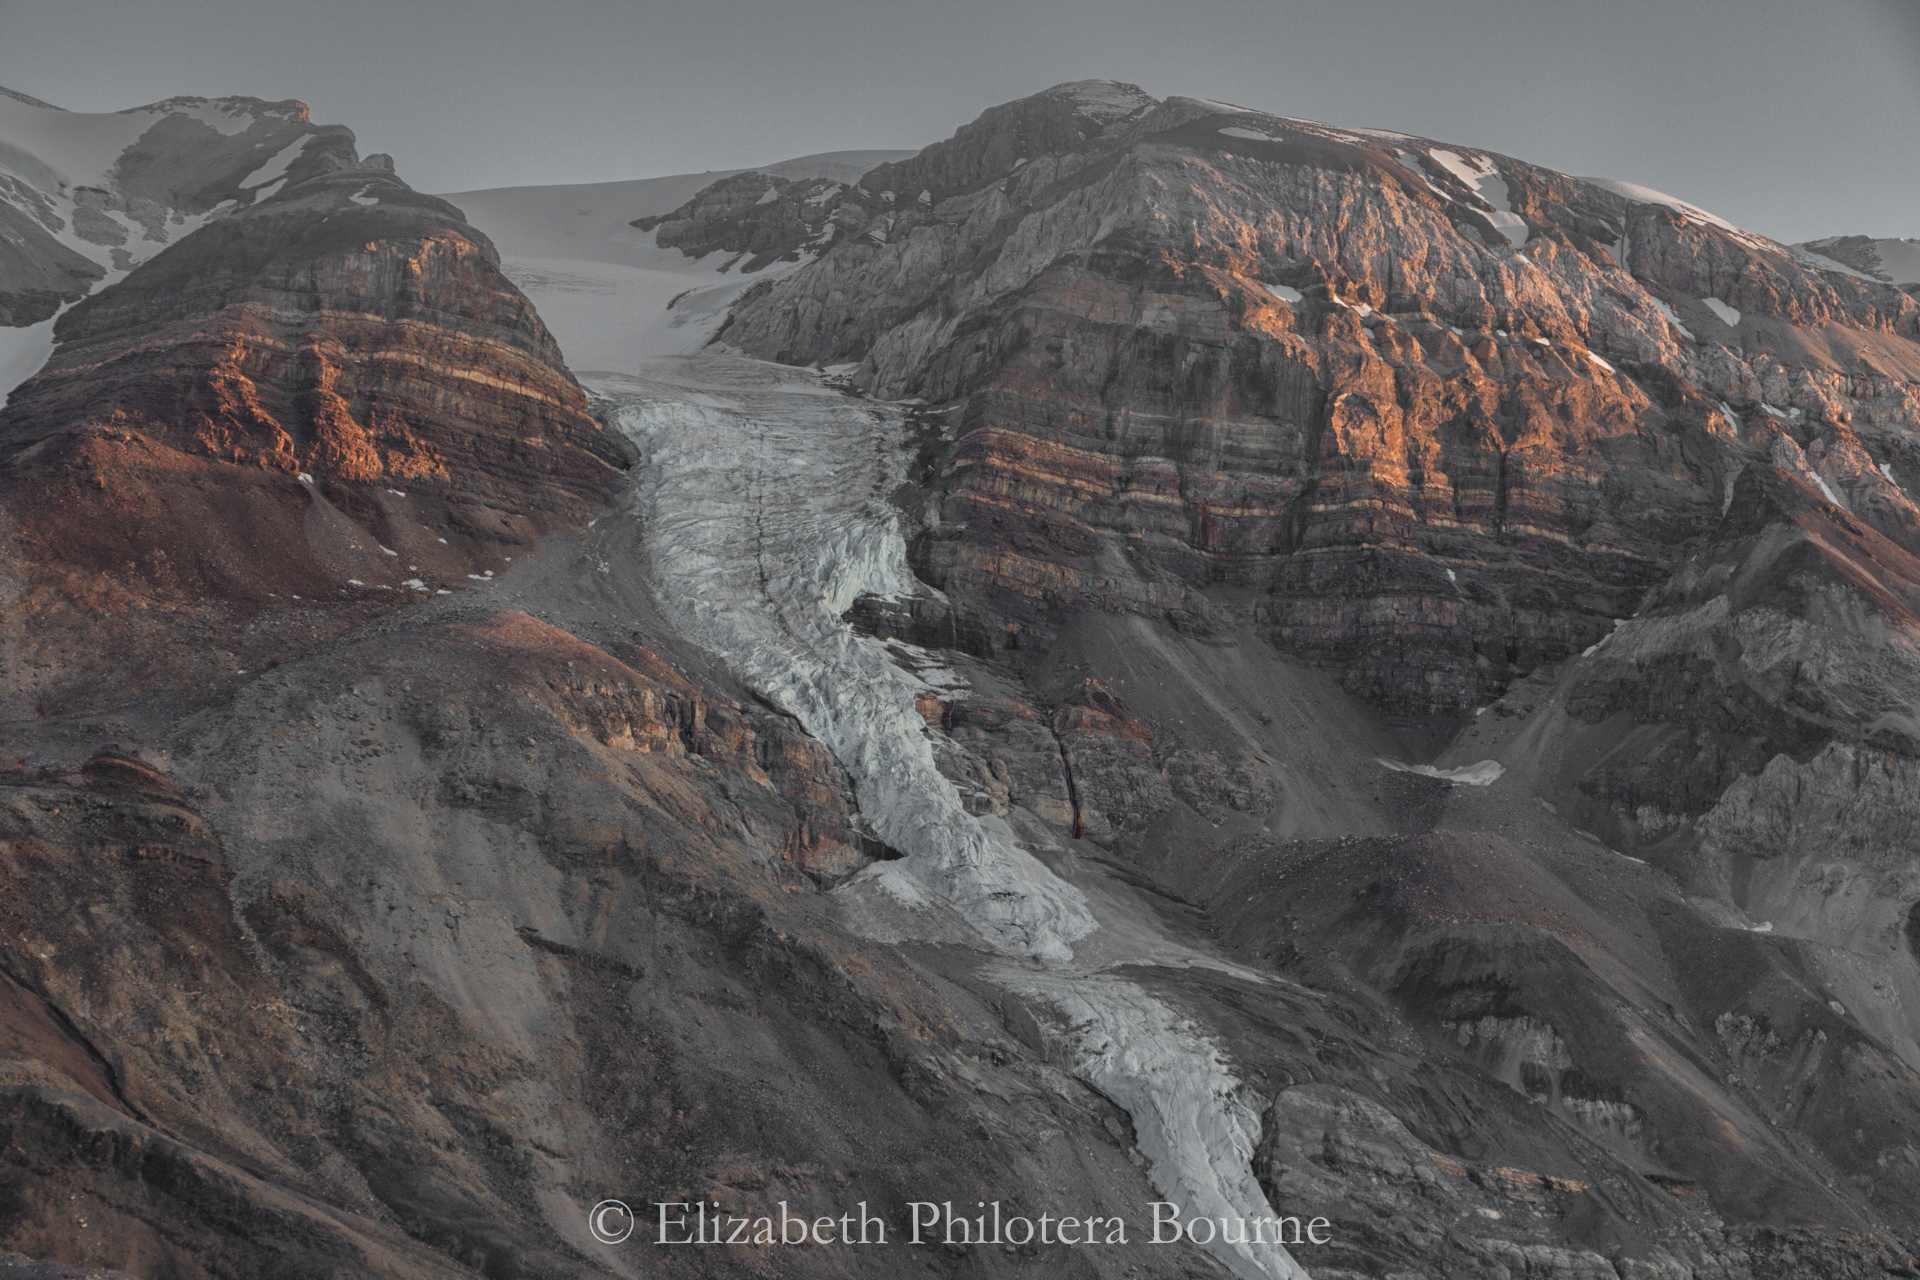 Rocky orange mountainside with remains of melting glacier in Greebland